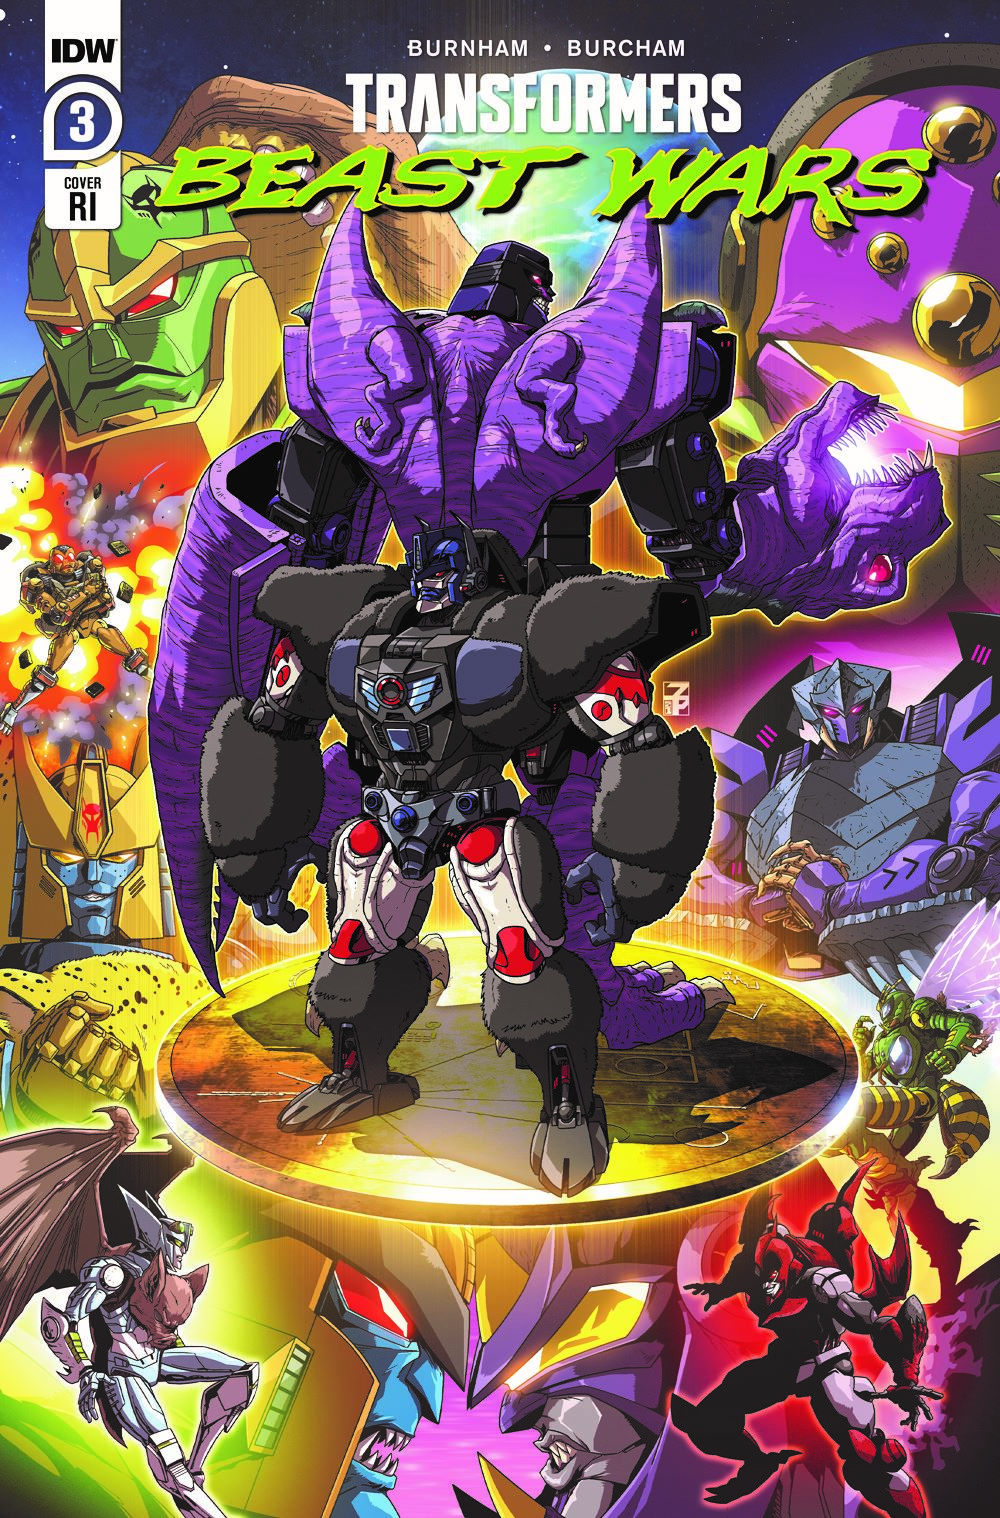 TFBW3-Cover-RI ComicList: IDW Publishing New Releases for 04/07/2021